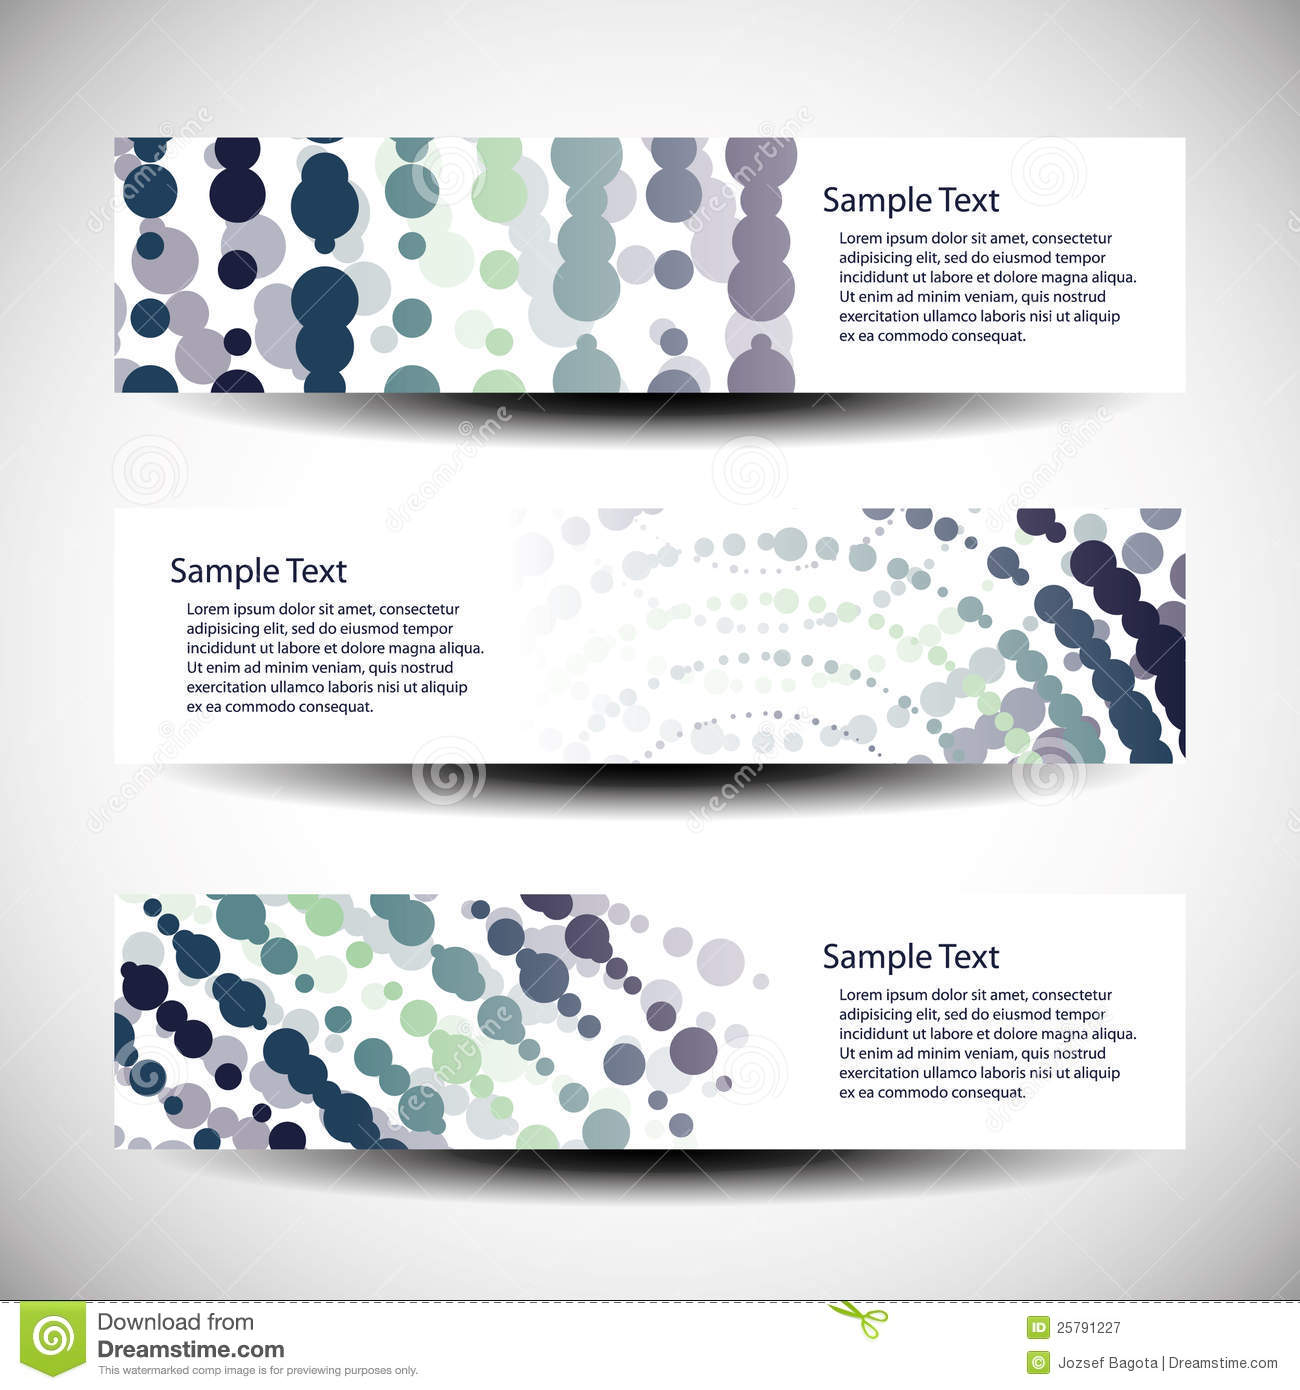 Abstract Header Design for Free